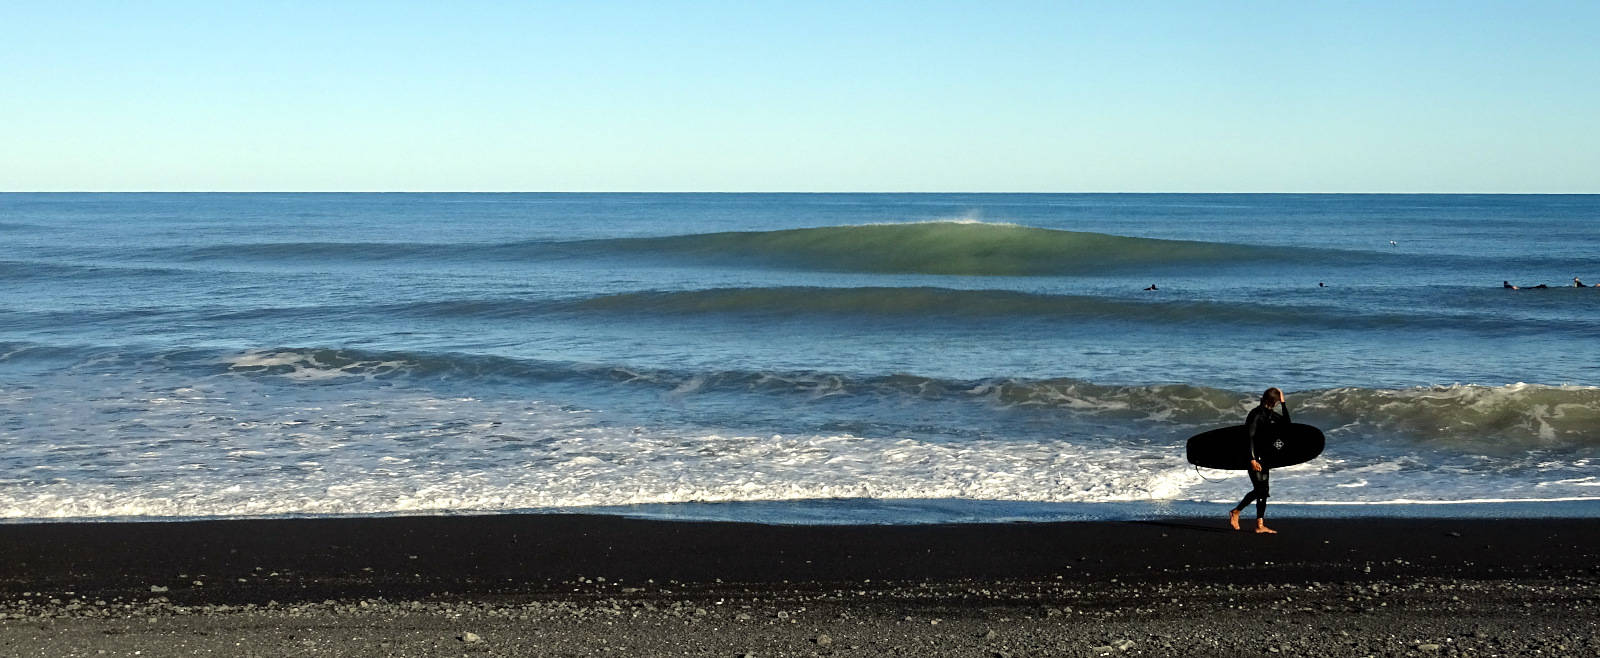 New Zealand surf trips with coaching.